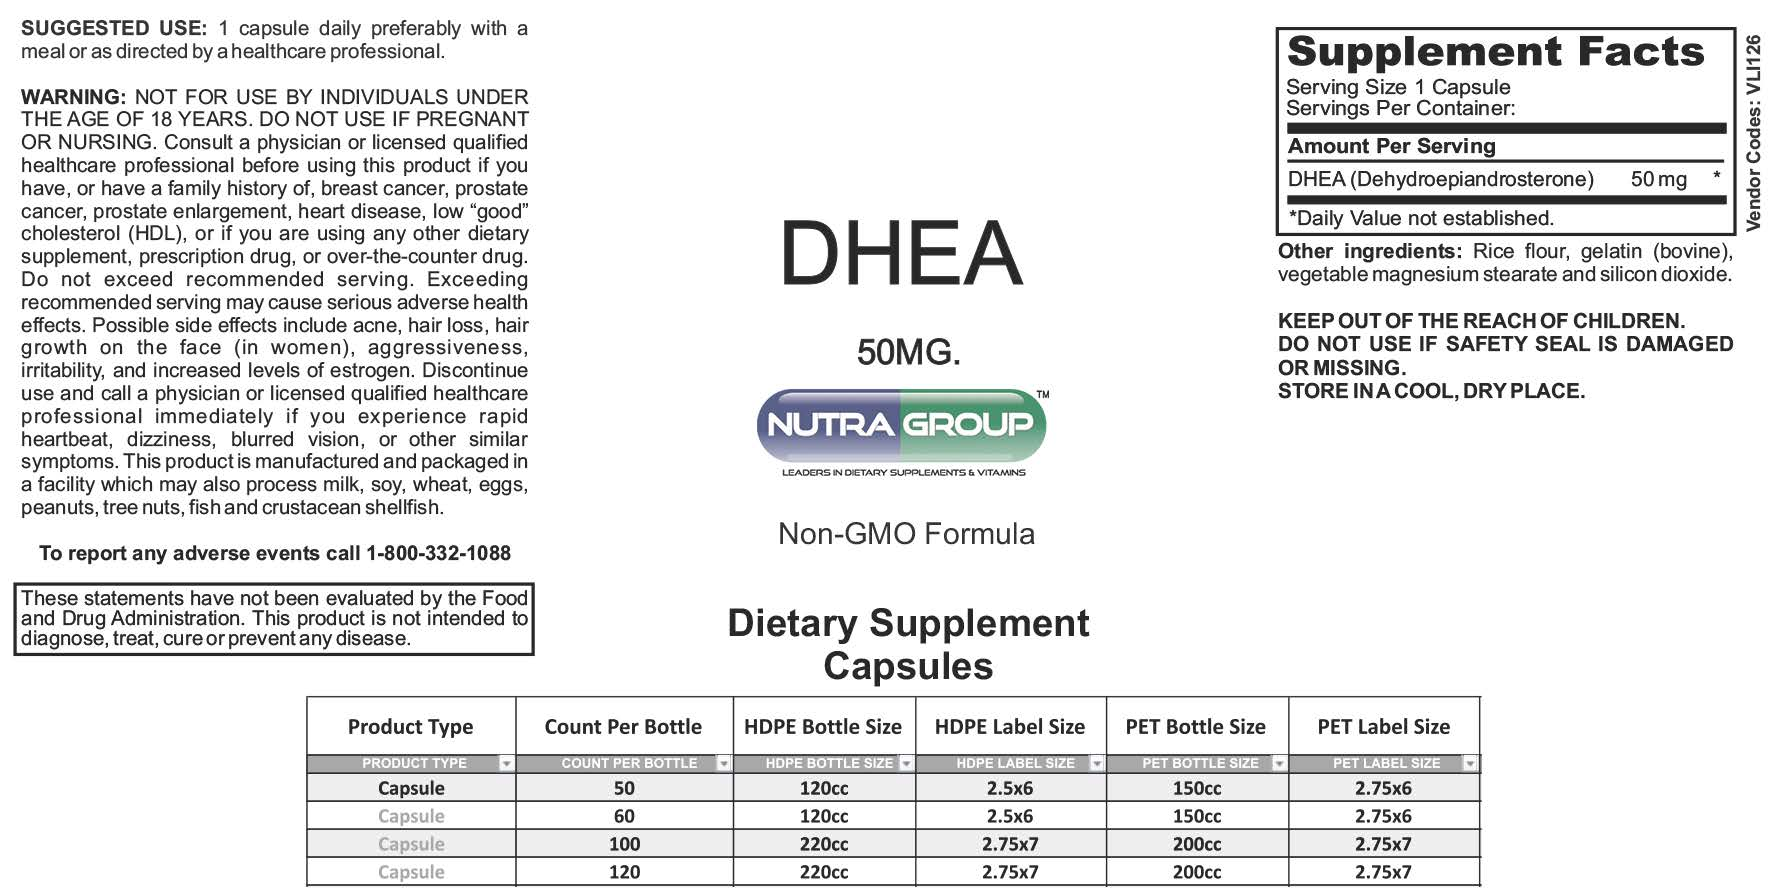 Private label DHEA supplements